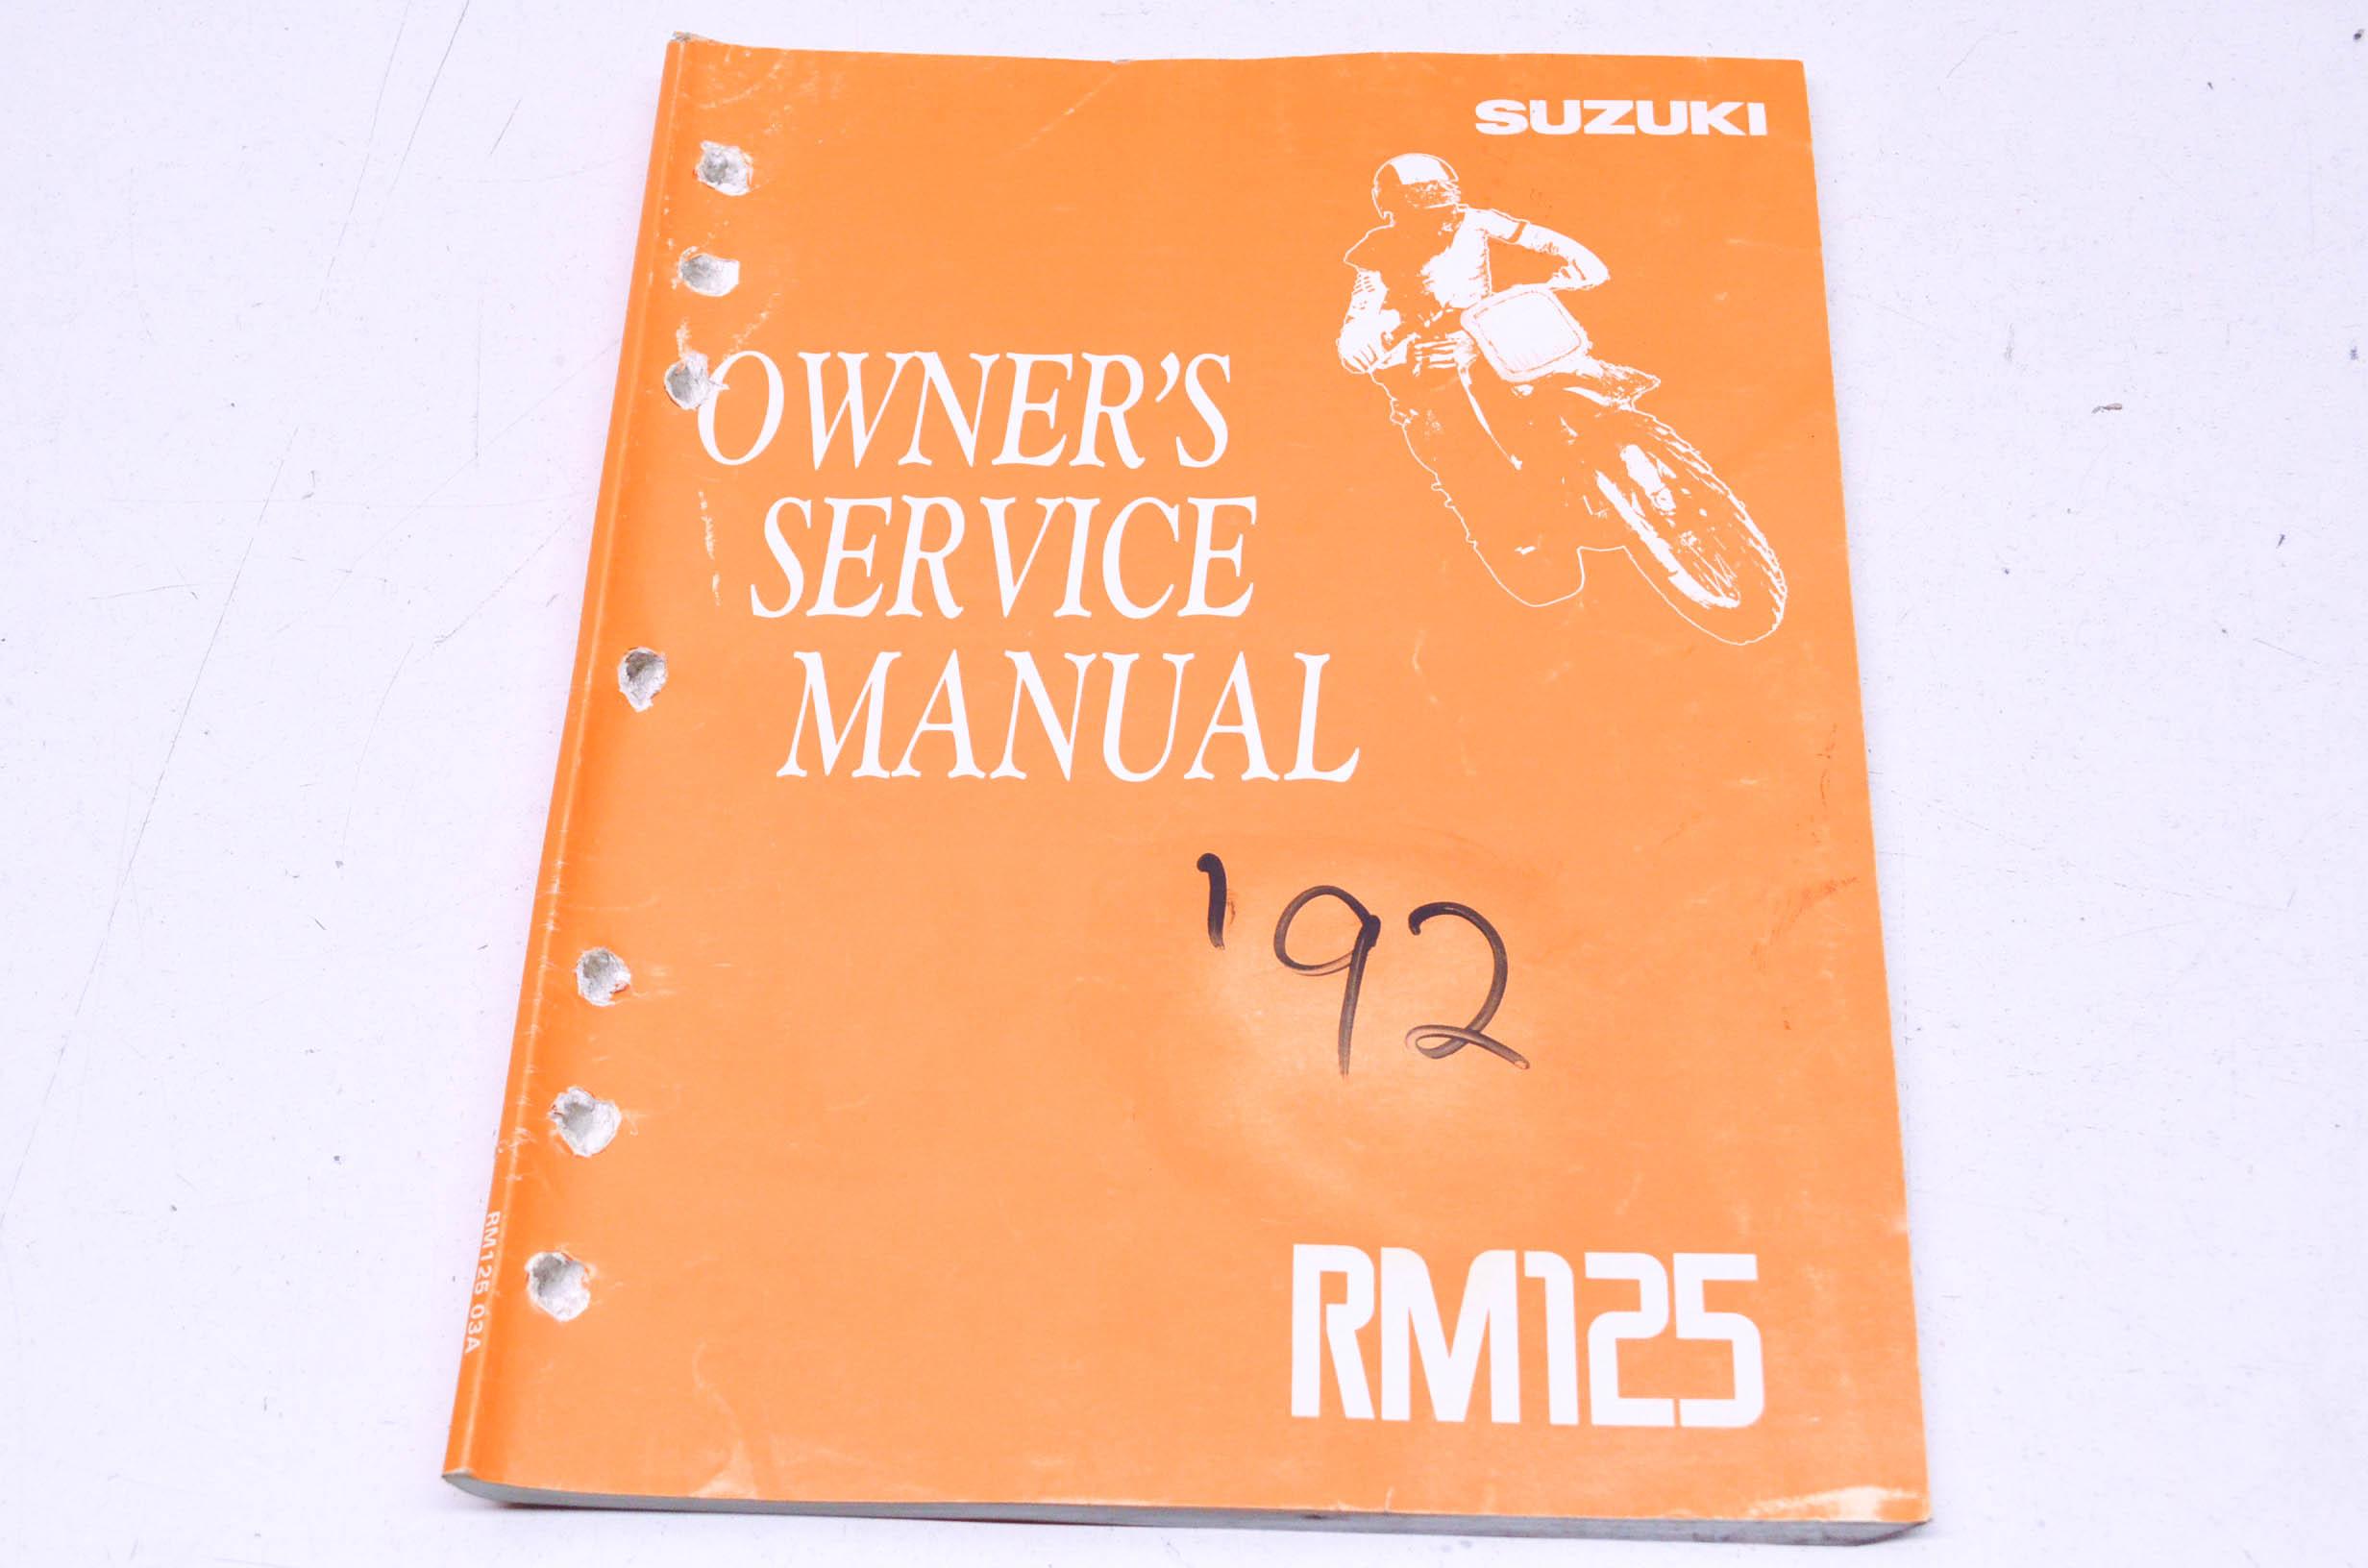 91 suzuki rm 125 service manual ebook